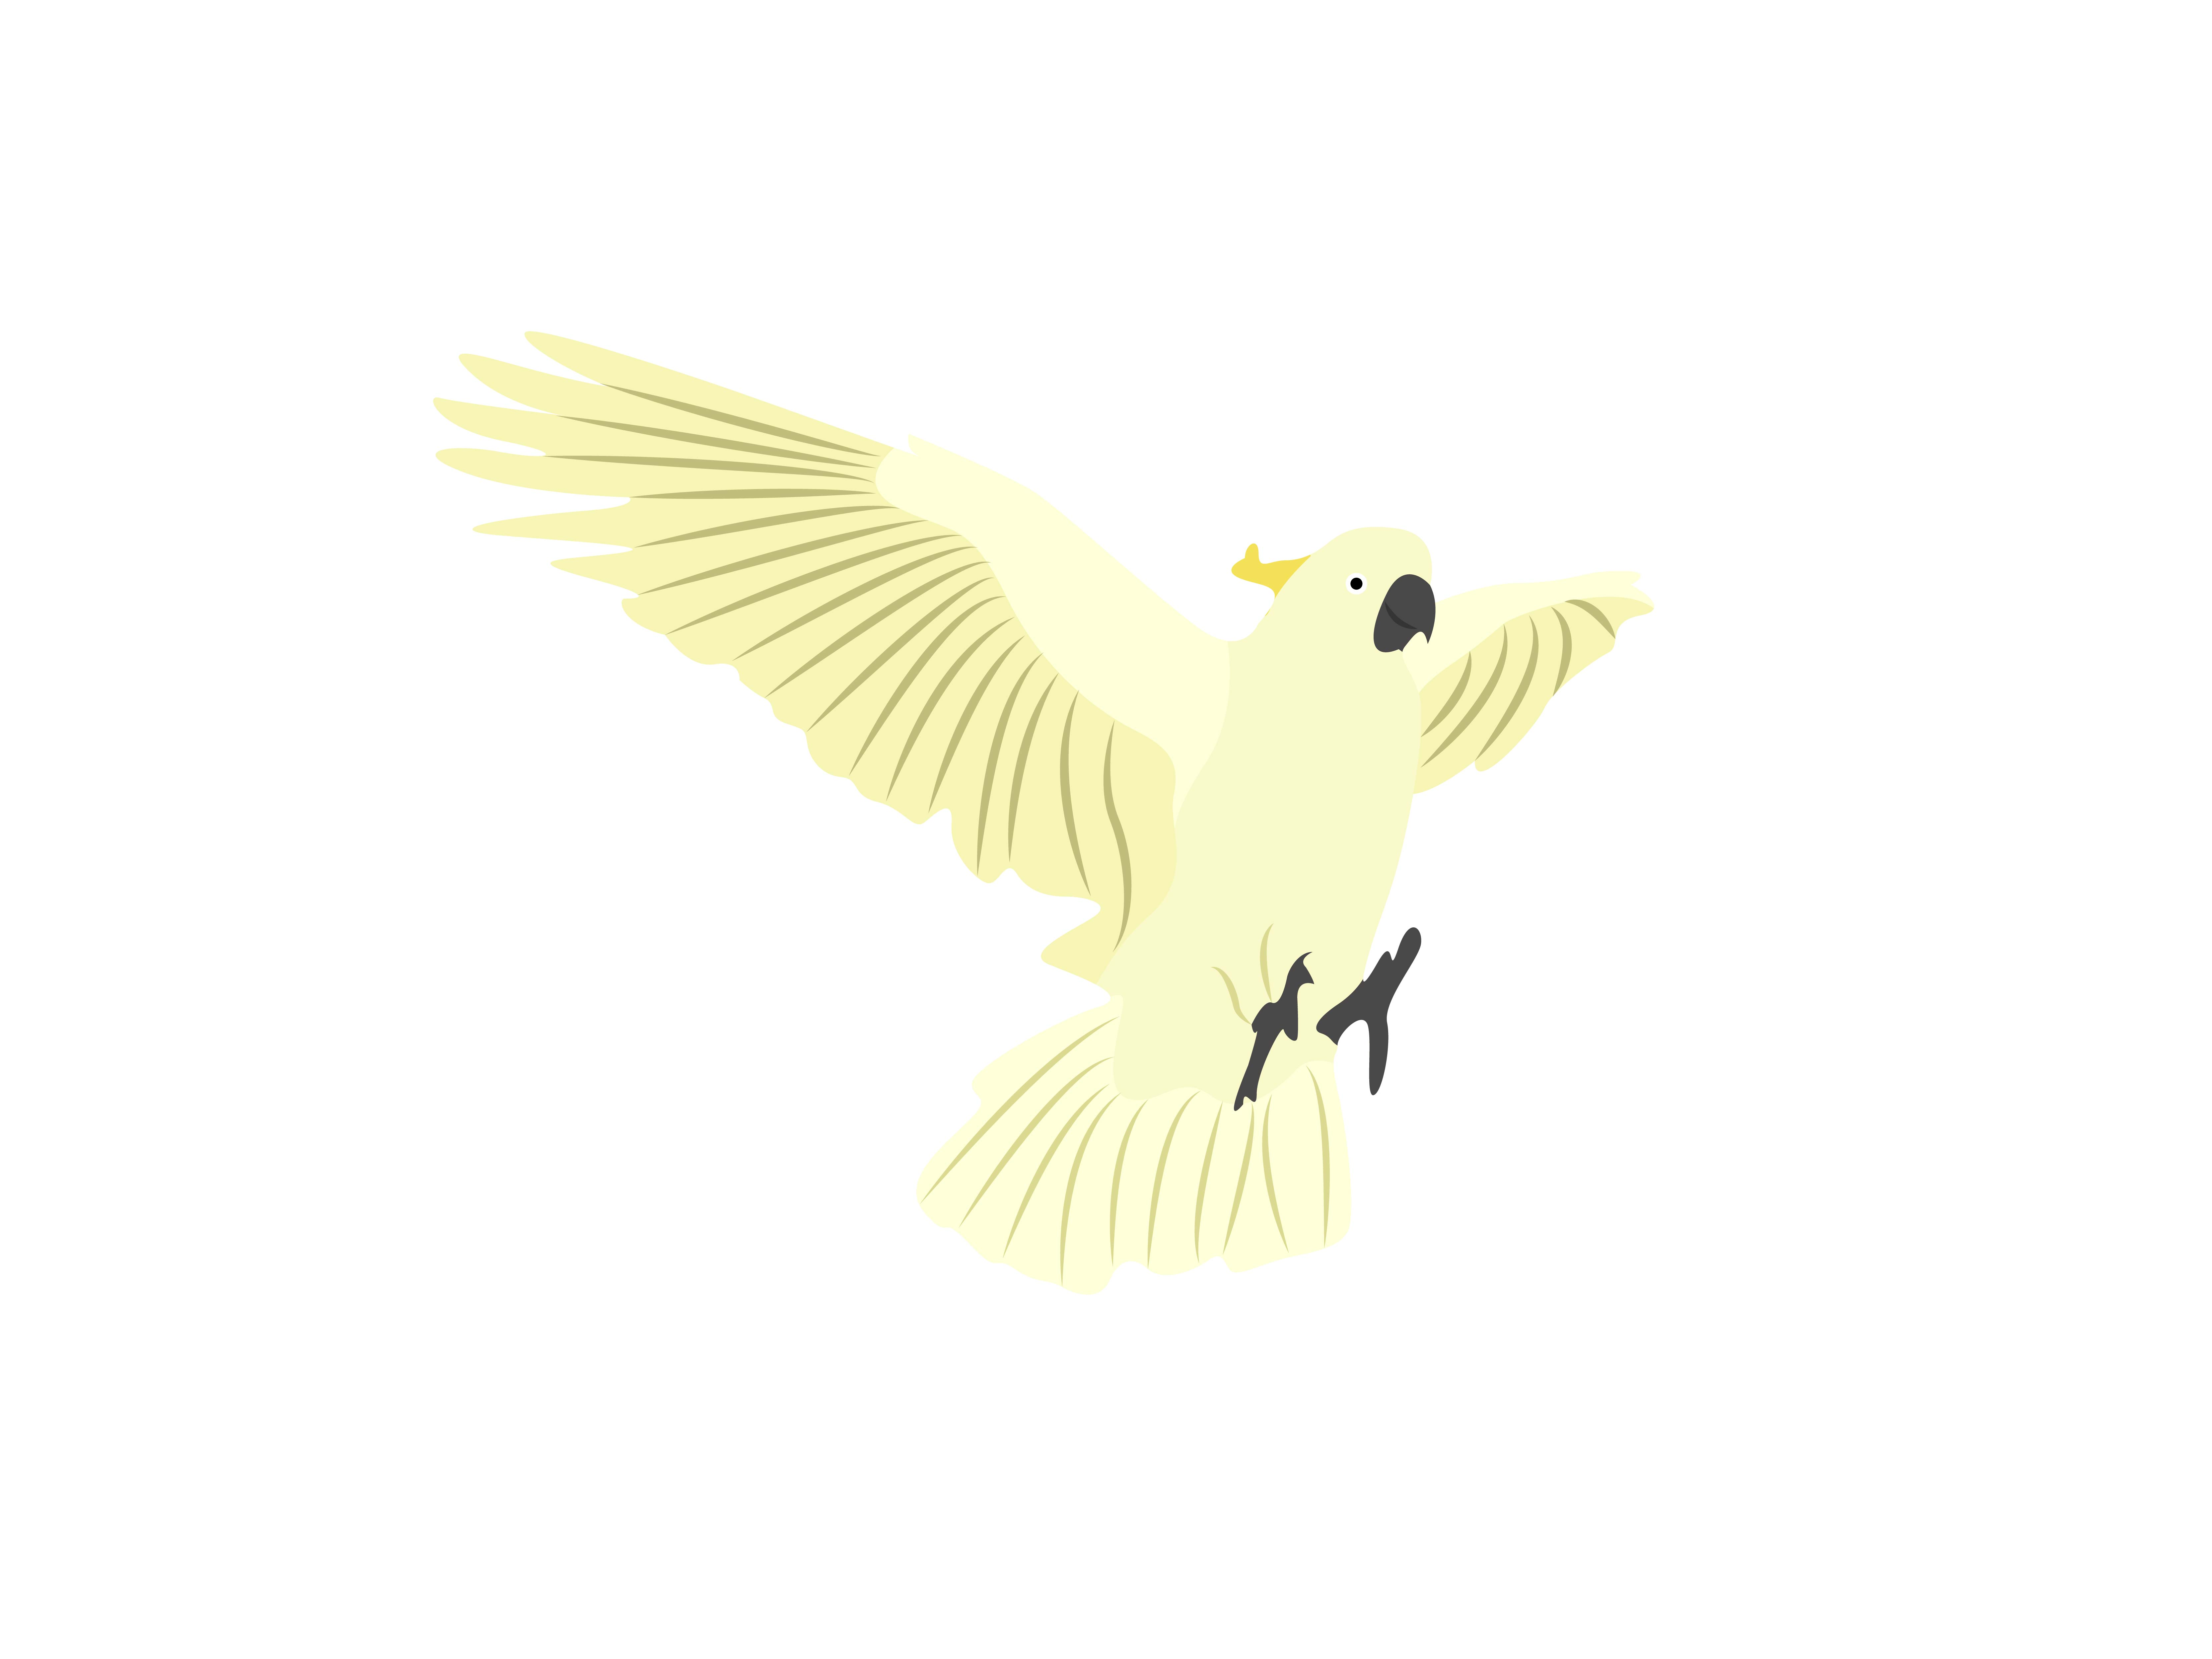 Download Free Cacatuidae Flaying Bird Animal Graphic By Archshape Creative for Cricut Explore, Silhouette and other cutting machines.